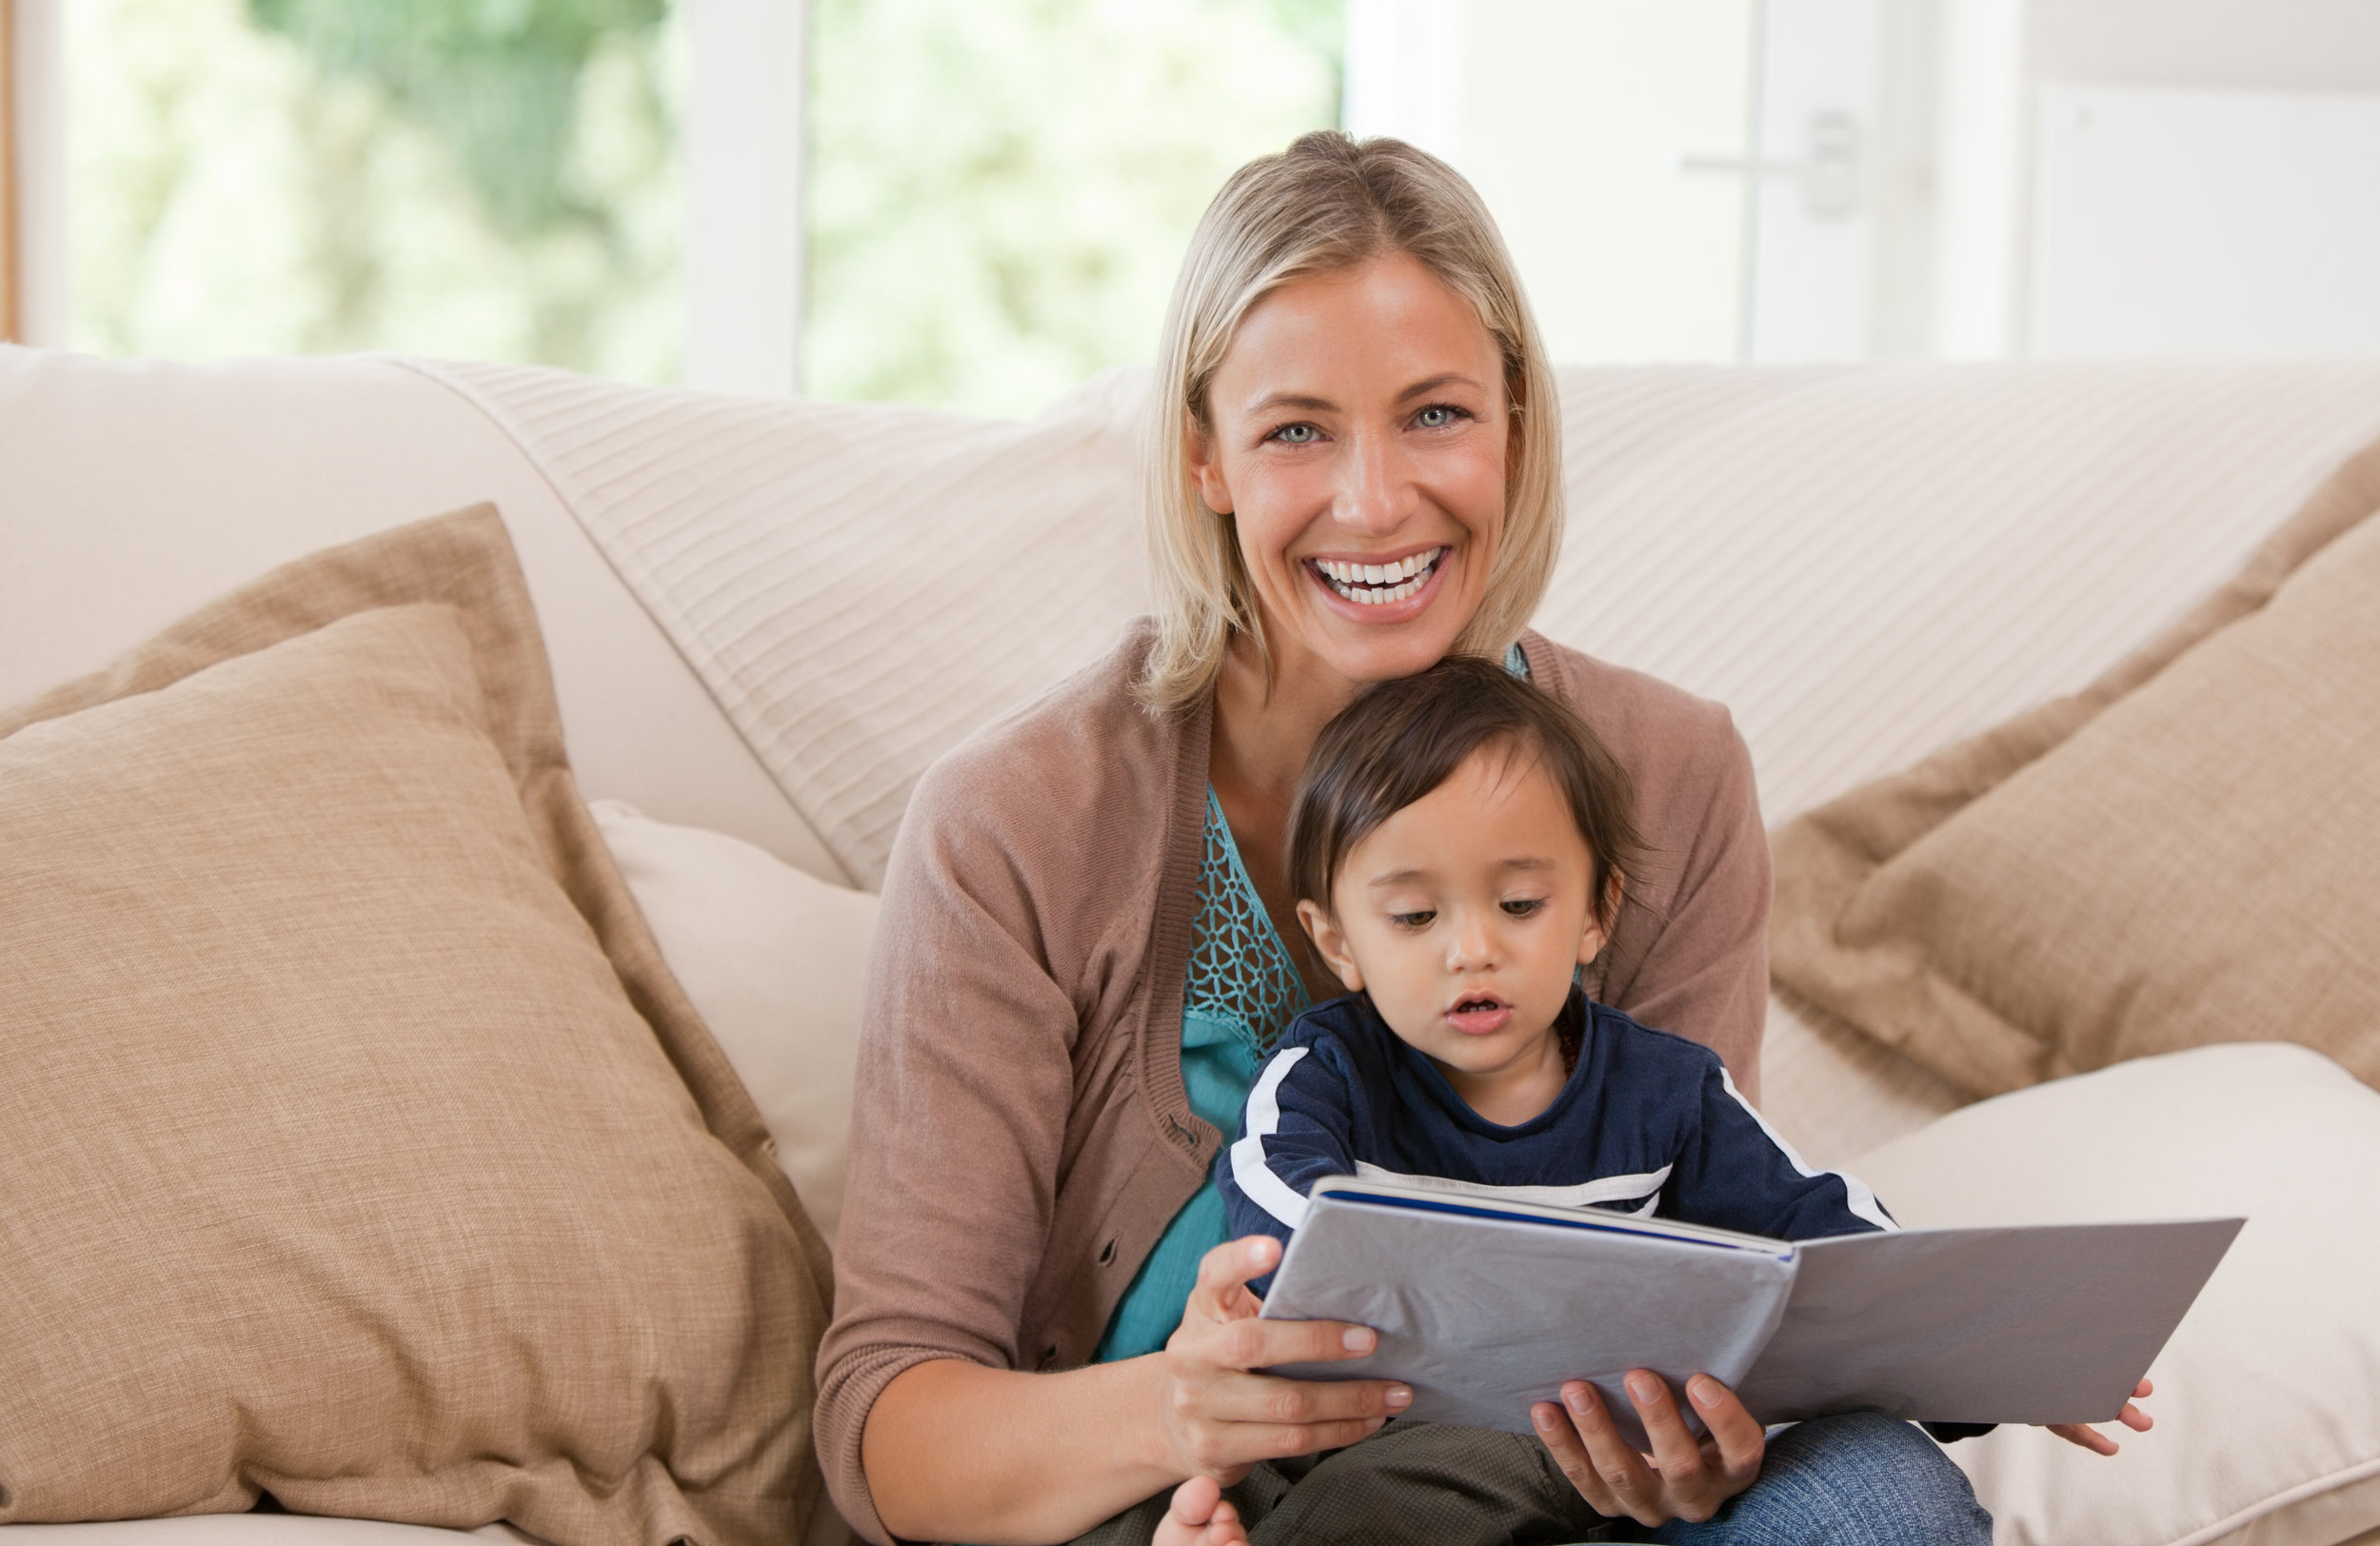 Looking for a Nanny? - Nanny RatesThe non-refundable fee to begin your search is $200 for a nanny. Once a desired applicant is chosen by the family a $500 placement fee is collected after a one week trial period to ensure your nanny is in fact the perfect fit. There is a 6 month replacement policy should you need a new nanny. Nanny salaries are negotiated throughout the application process. Families pay the nanny directly. The typical rate is $12-$25 an hour for live out and $400-$1000 a week for live in.